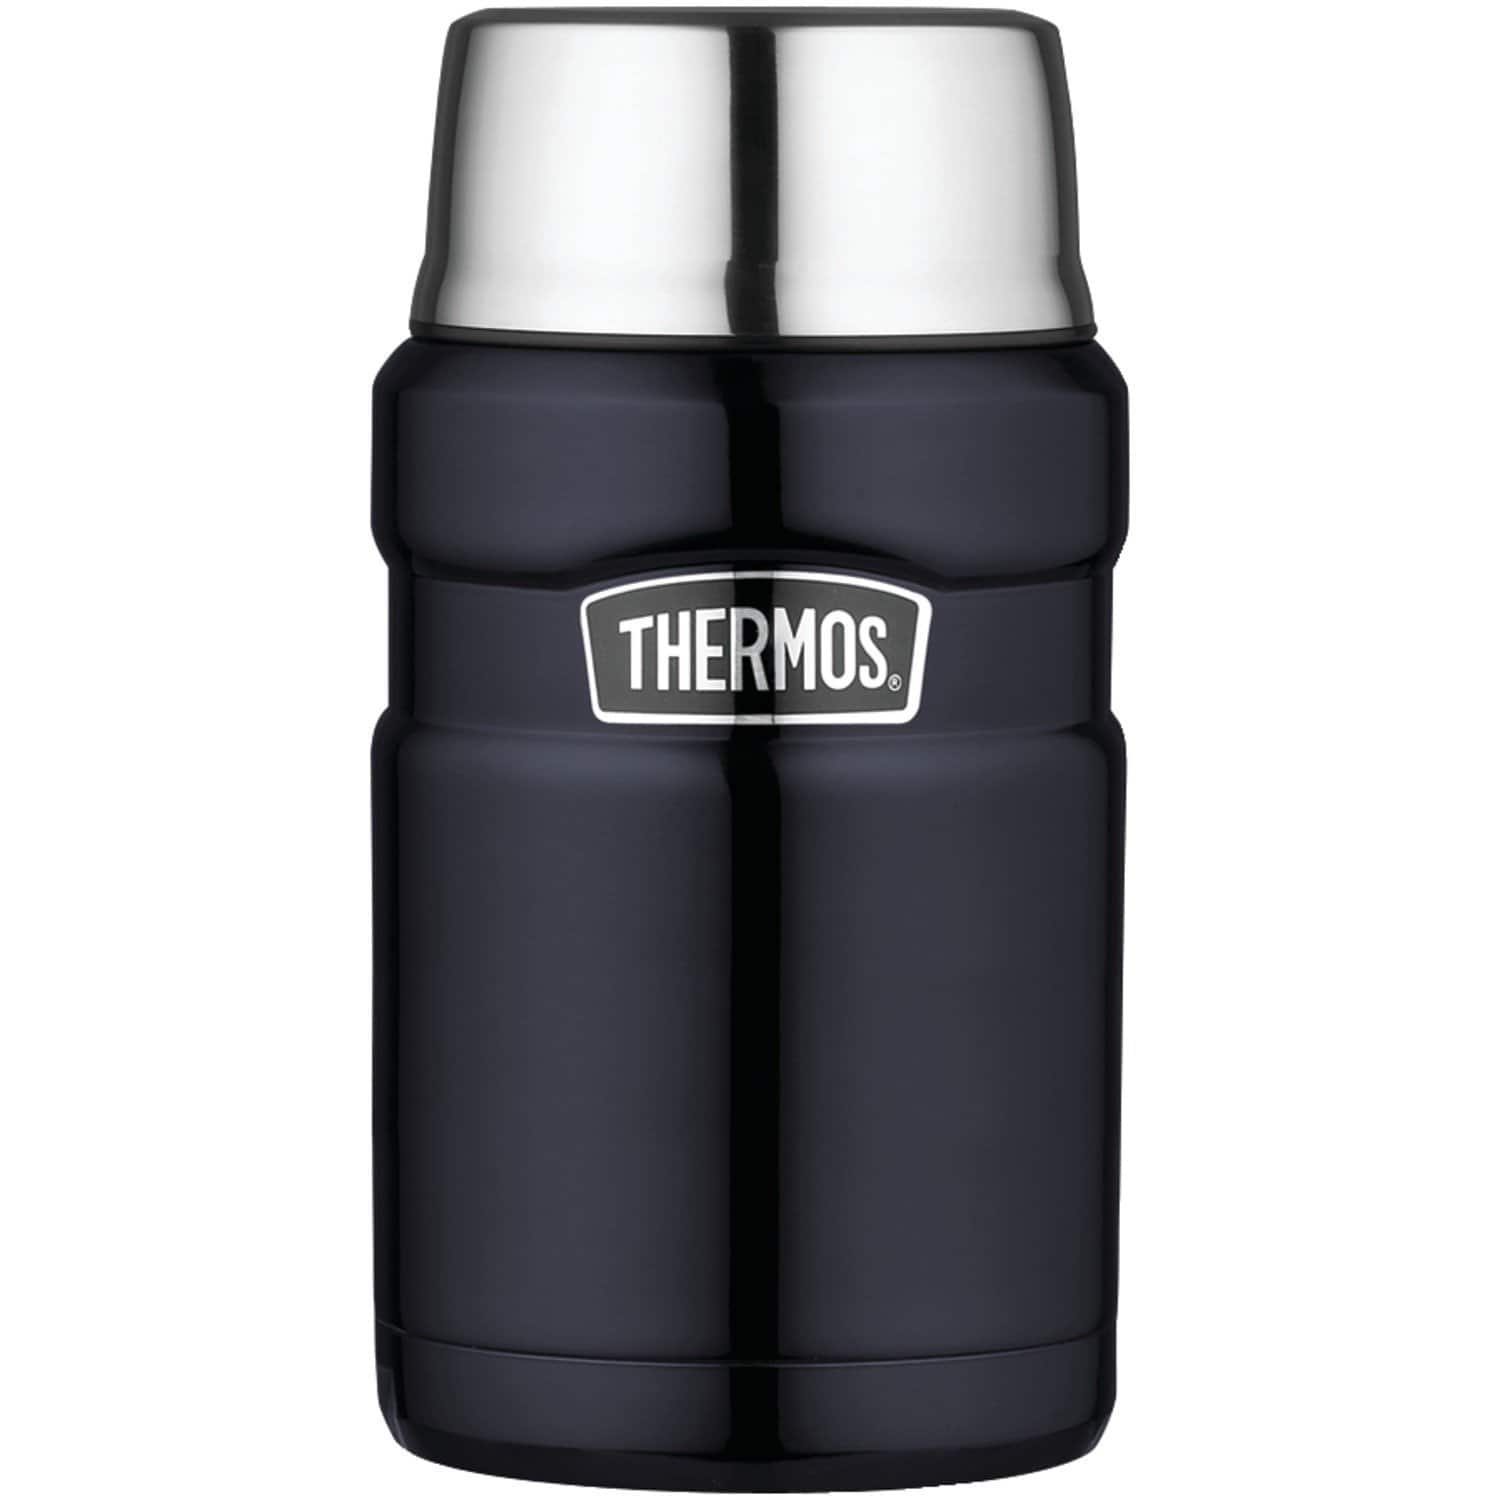 Thermos Stainless King 24 Ounce Food Jar, Midnight Blue for 18.23 shipping free for Prime members $18.23